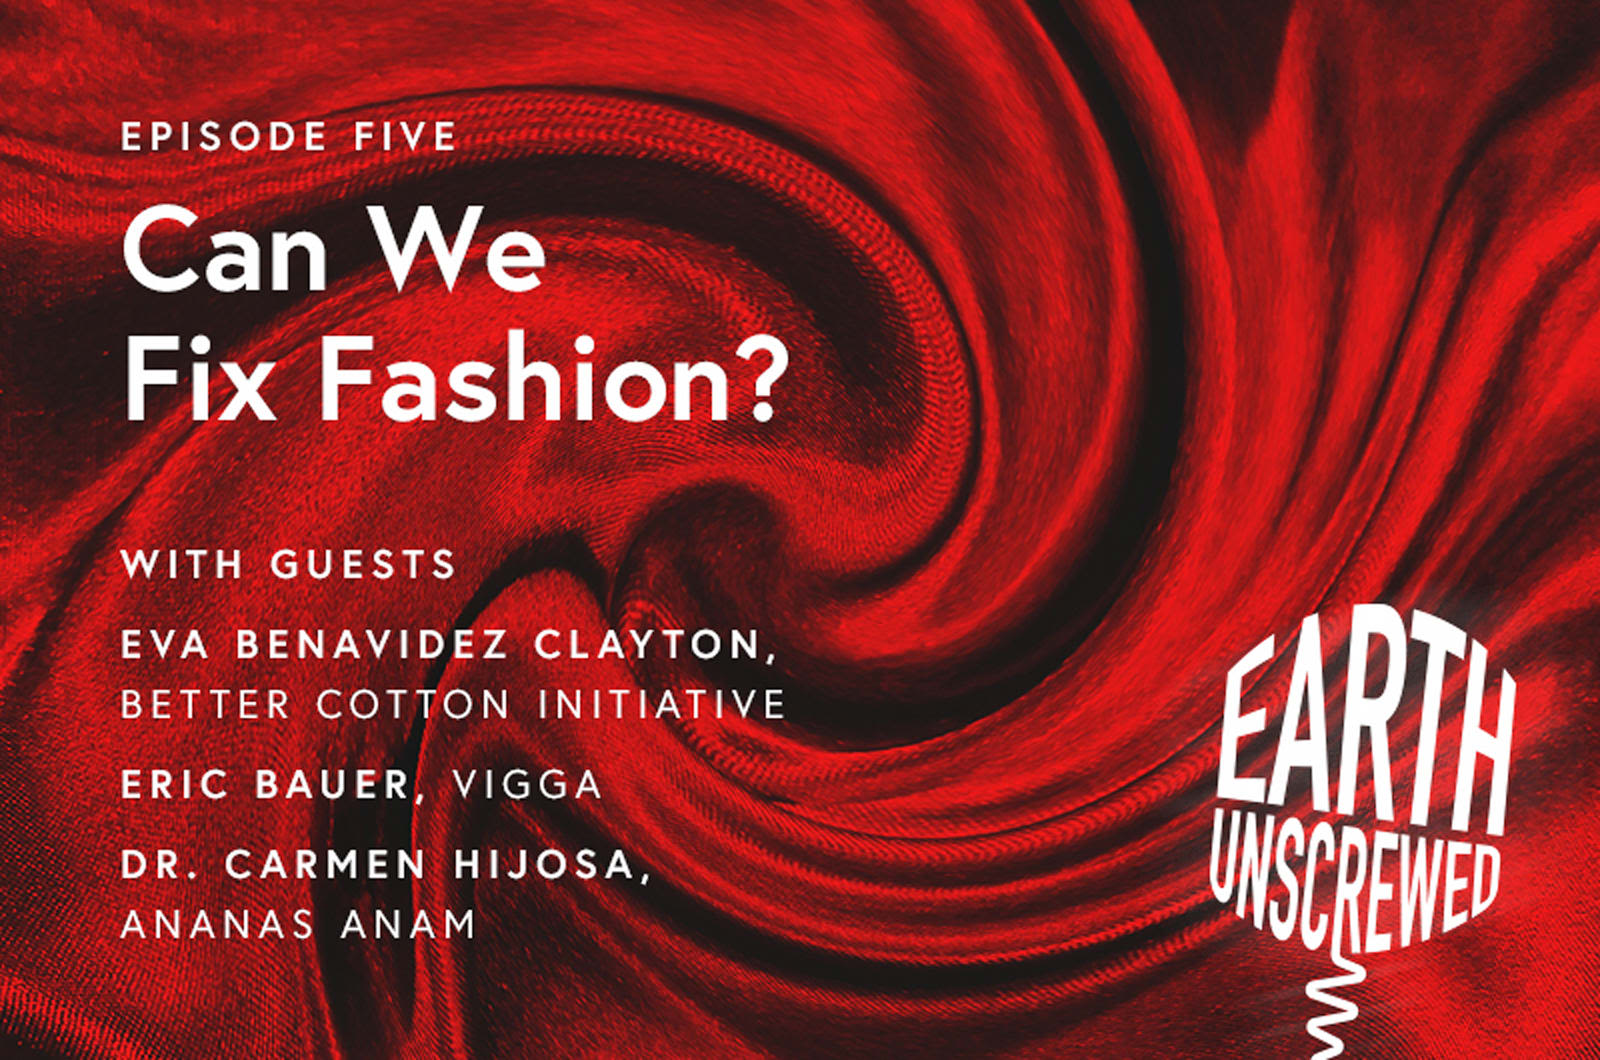 Can we fix fashion - Earth Unscrewed podcast episode by Virgin Unite